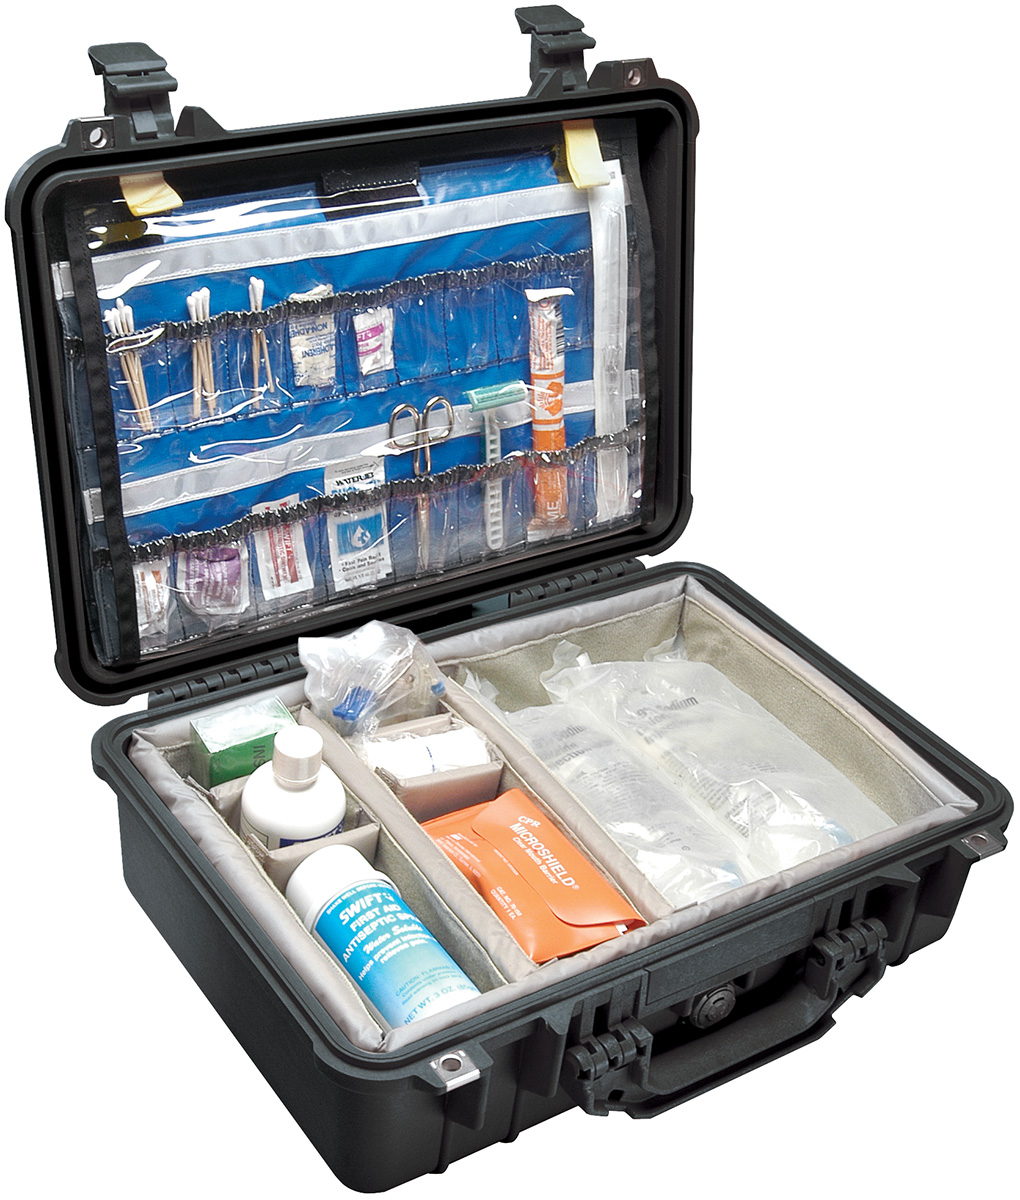 pelican ems medical 1500ems first aid